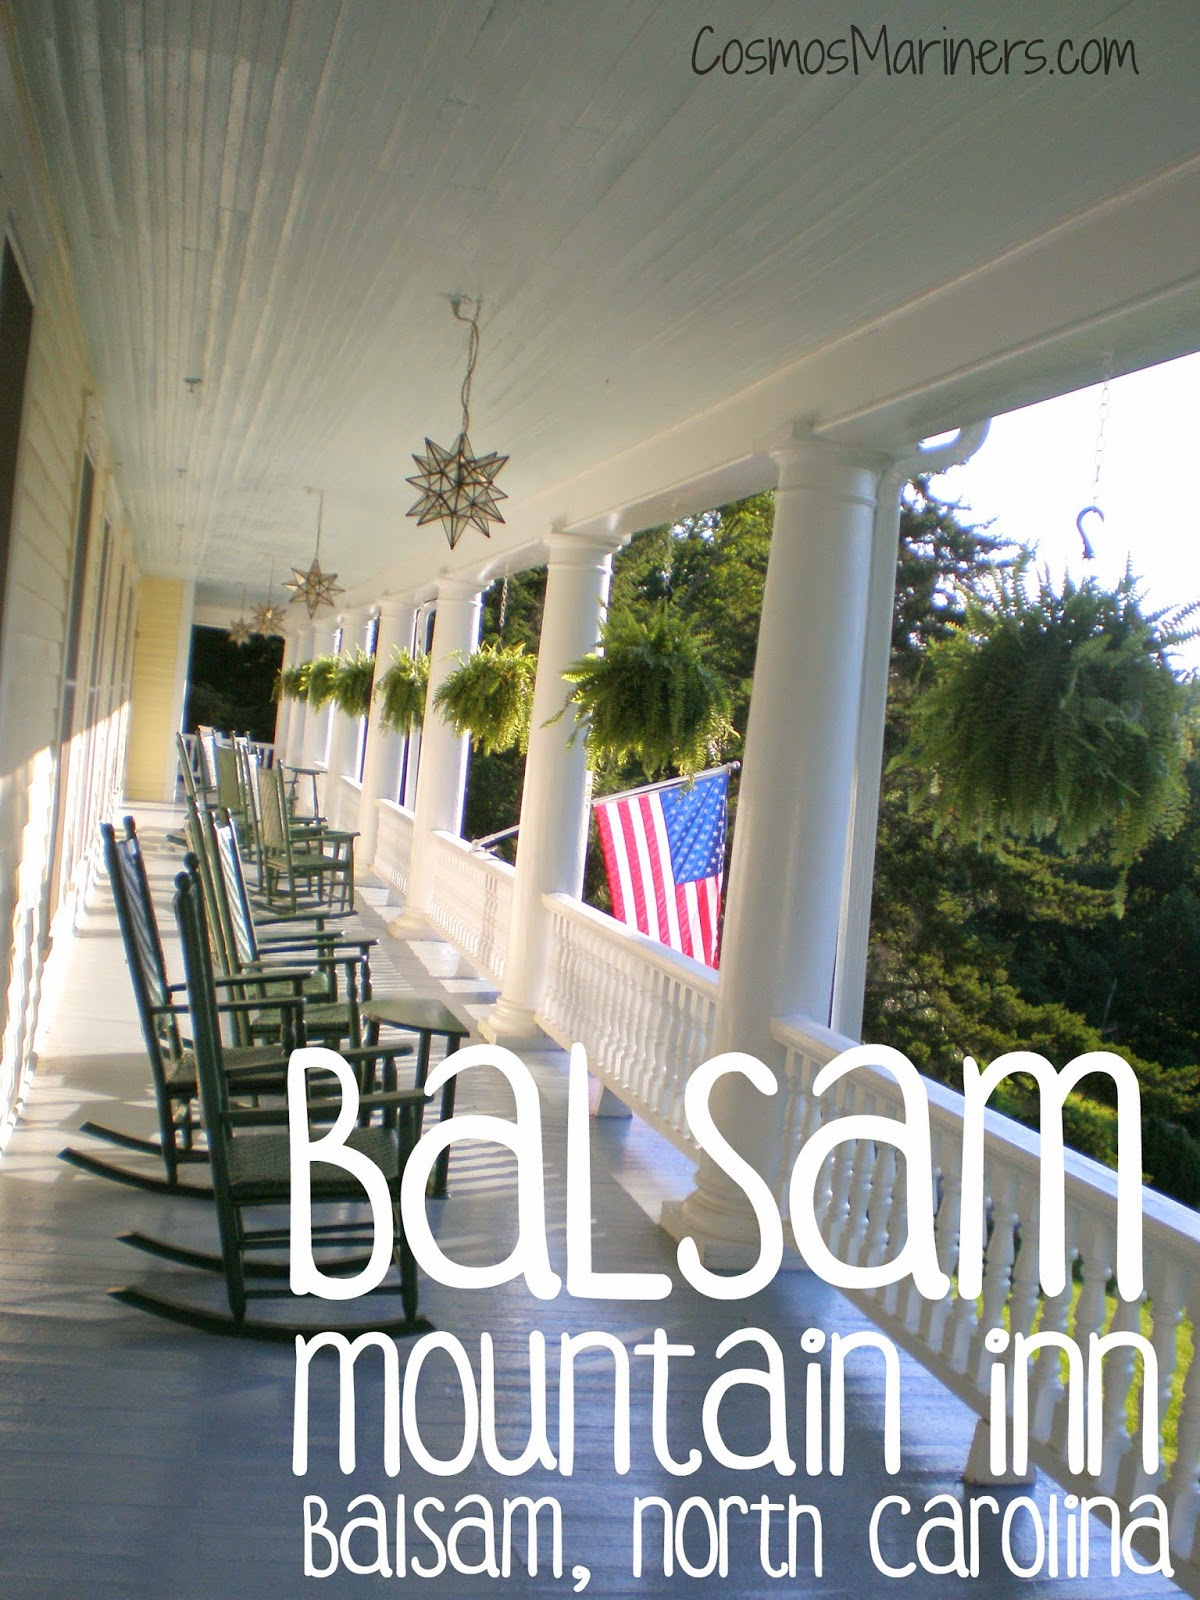 Balsam Mountain Inn, Balsam, North Carolina | CosmosMariners.com